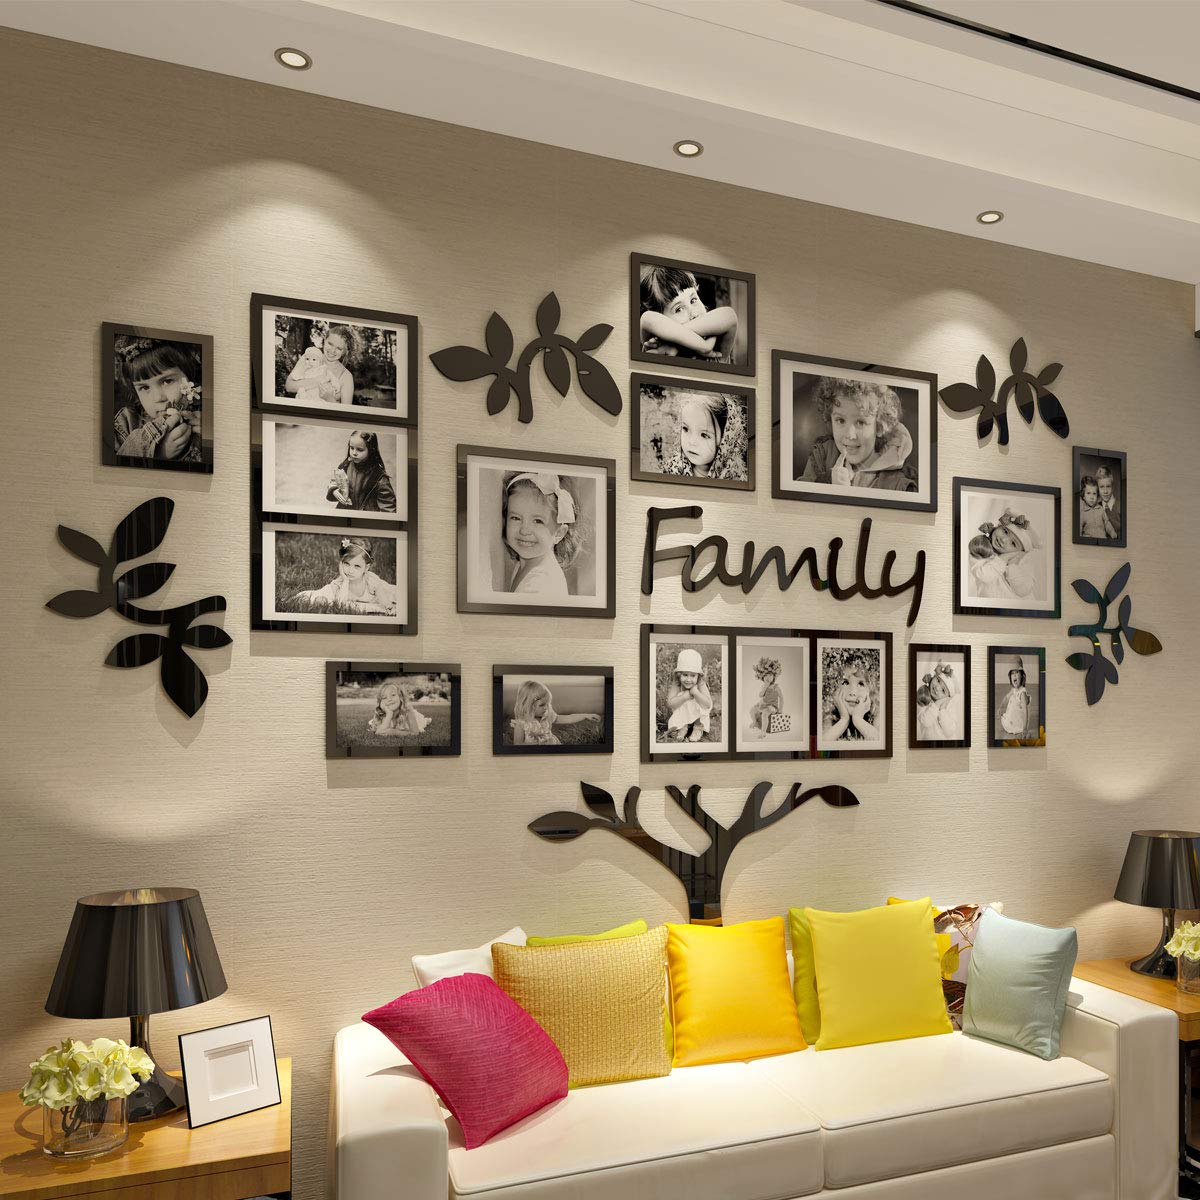 CrazyDeal Family Tree Picture Frame Collage 3D DIY Stickers Wall Art for Living Room Home Decor Gallery Large by CrazyDeal